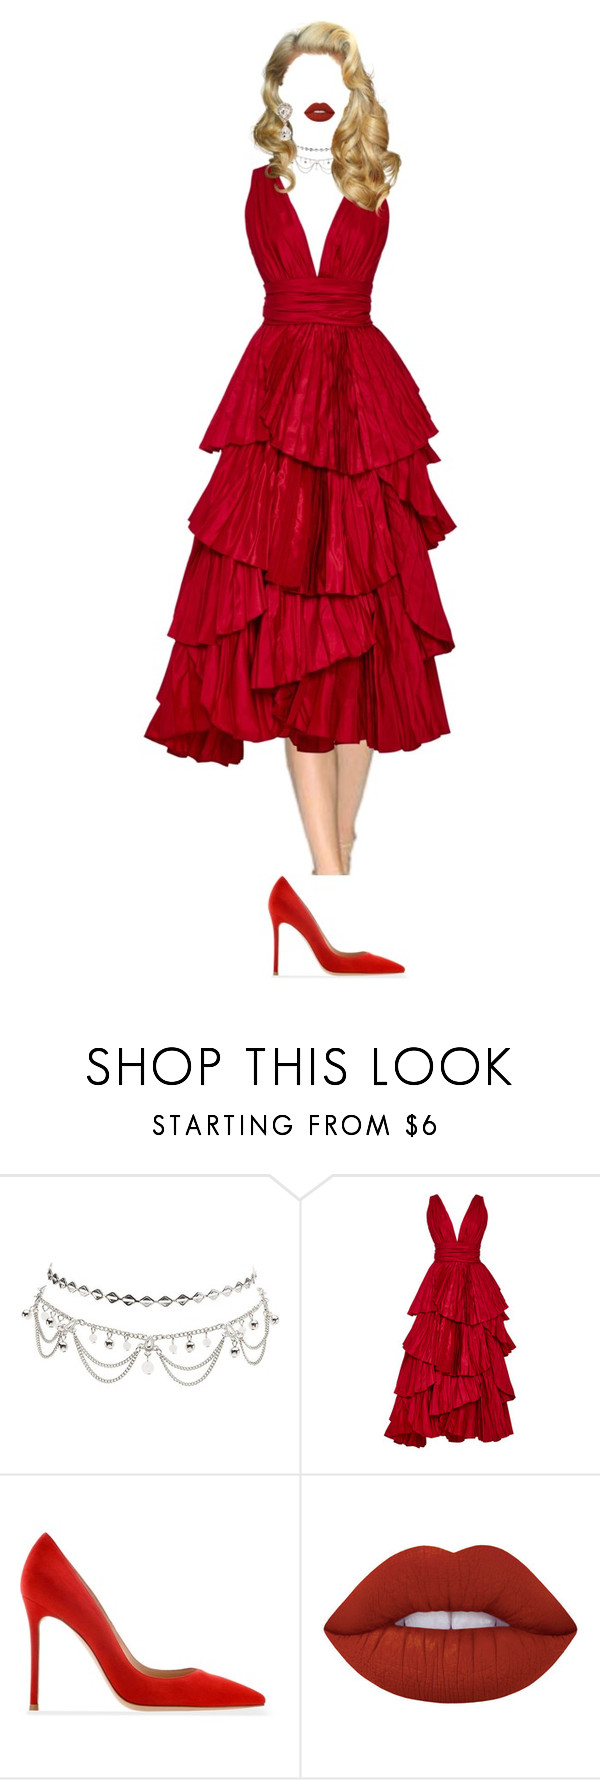 """- Lin Ai"" by xxeucliffexx ❤ liked on Polyvore featuring Charlotte Russe, Oscar de la Renta, Gianvito Rossi, Lime Crime, Dolce&Gabbana and AI"